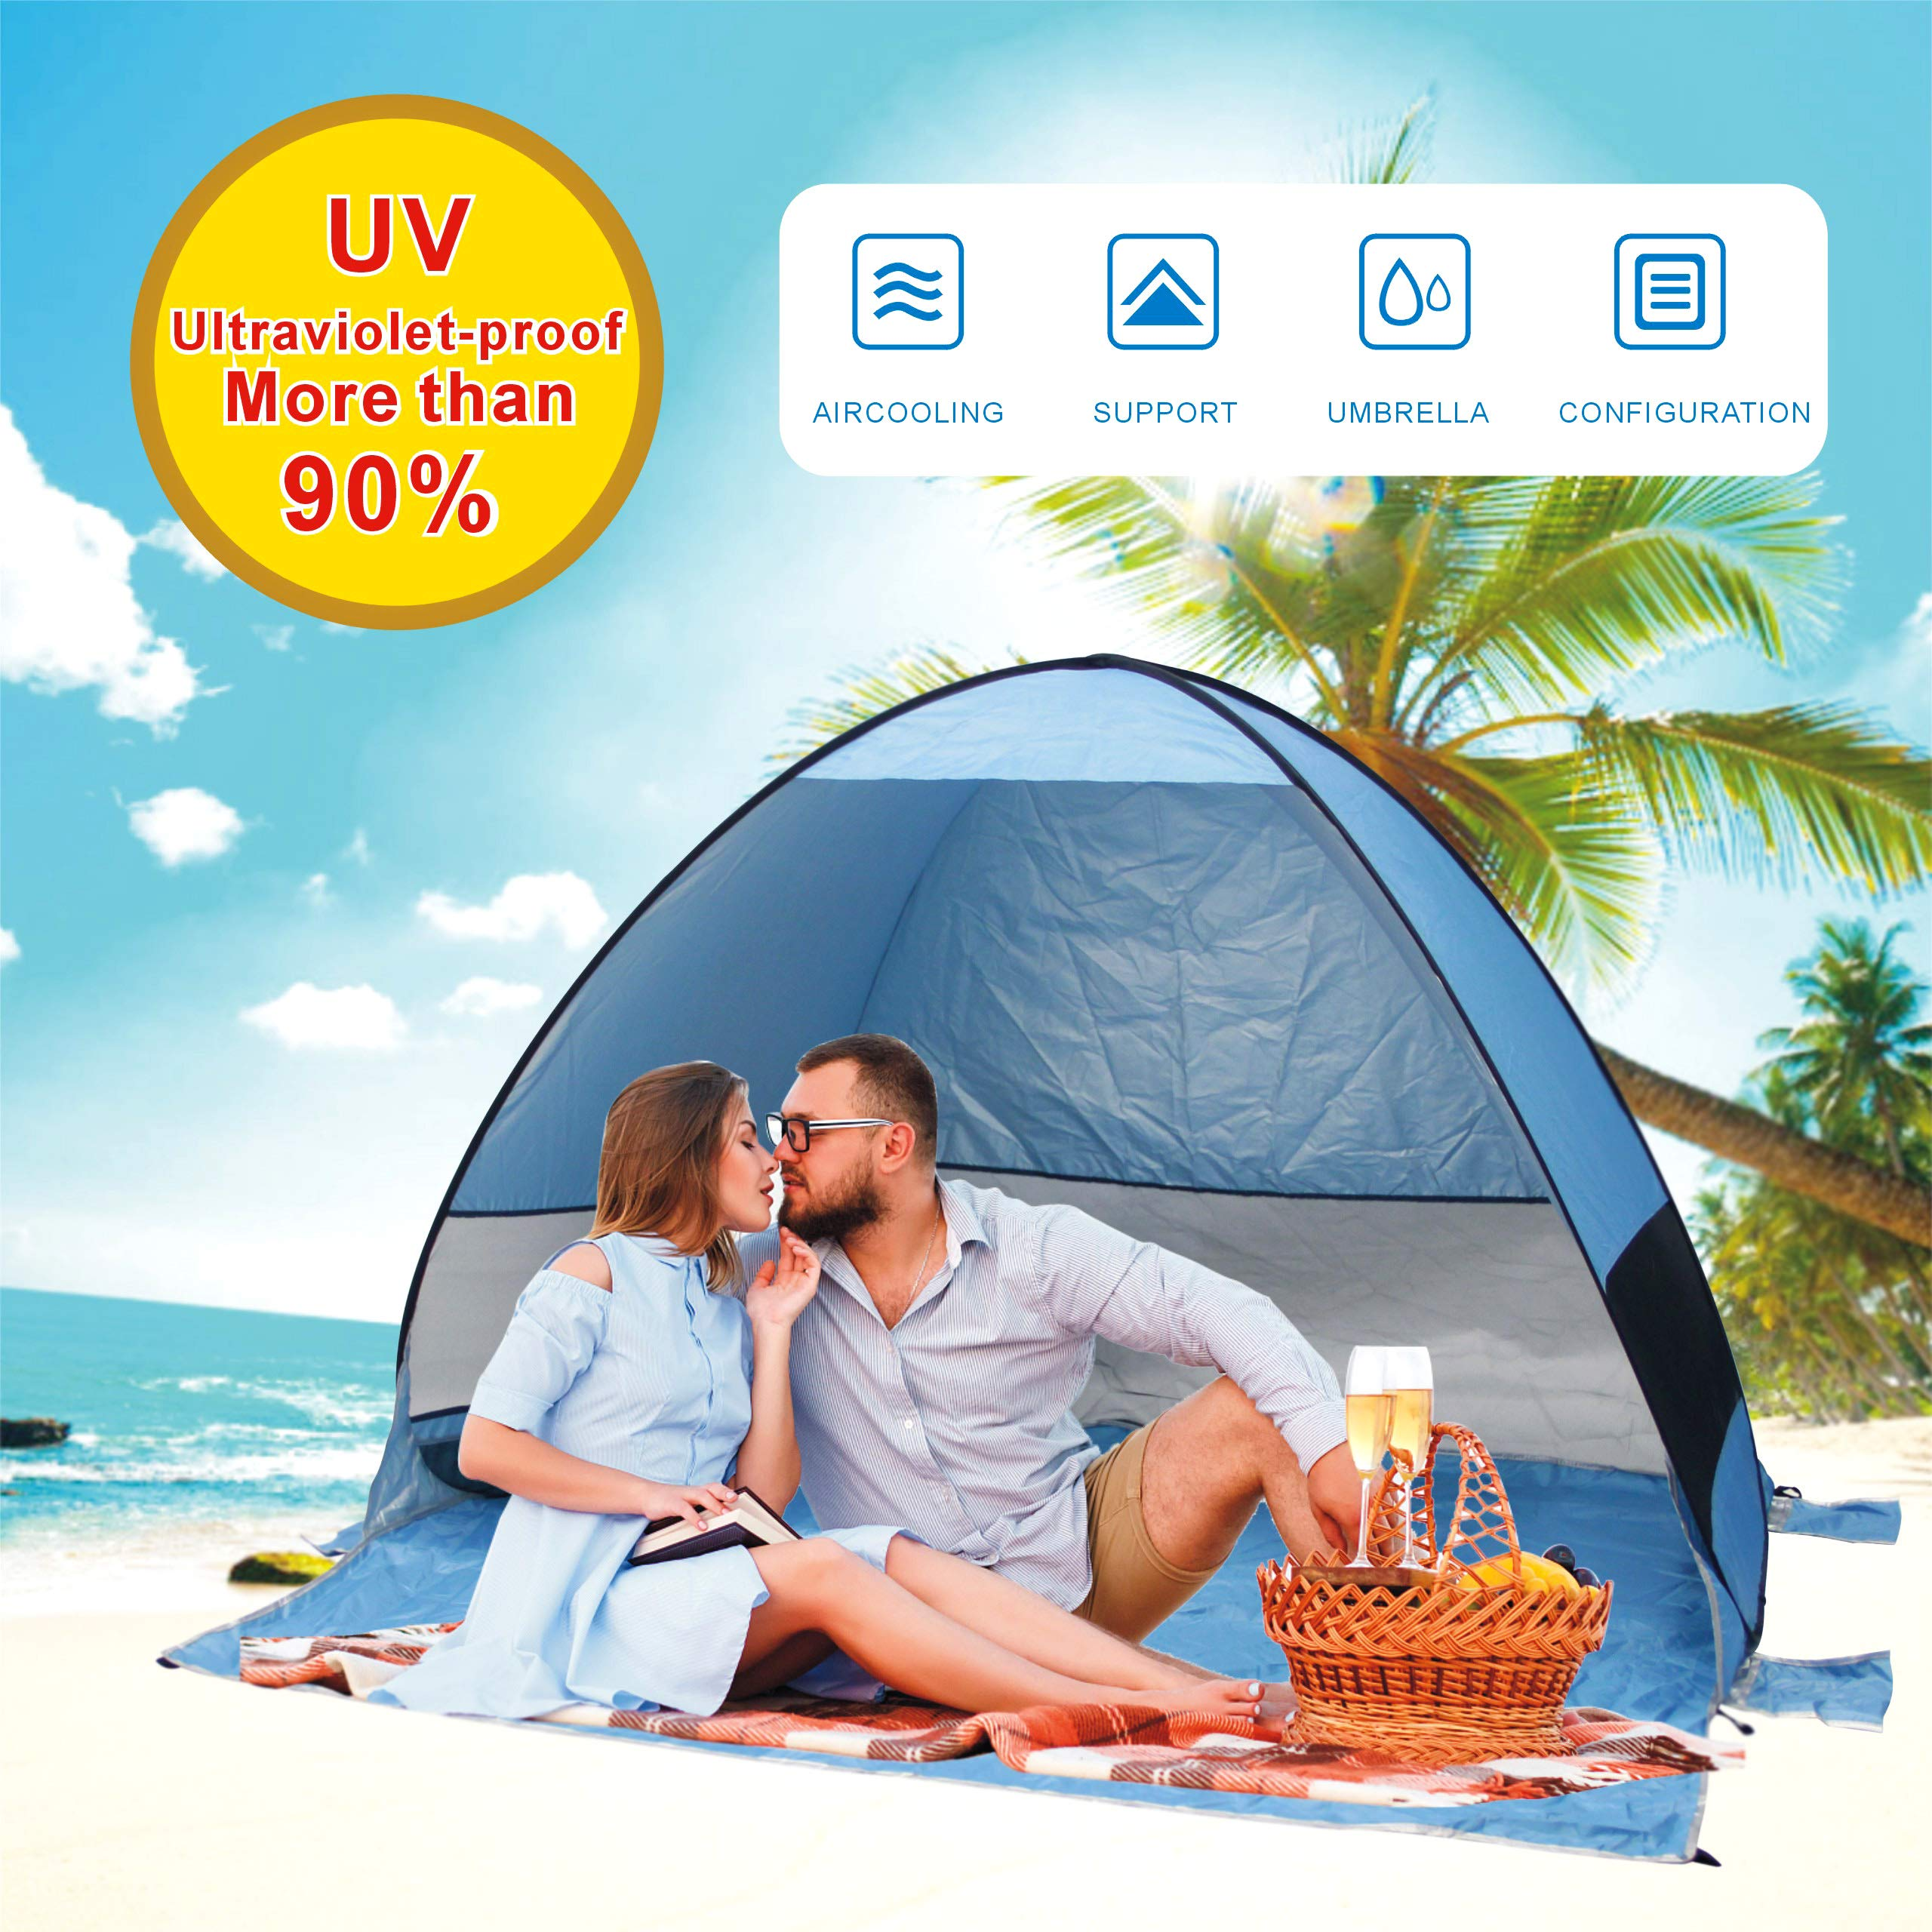 Gupamiga Beach Tent,Tents for Camping, Pop Up Tent Sun Shade Instant Tent Sun Shelter Pop Up with Tent Stakes Waterproof Portable UPF 50+ UV Protection Tent for Outdoor Family Camping Hiking Fishing by Gupamiga